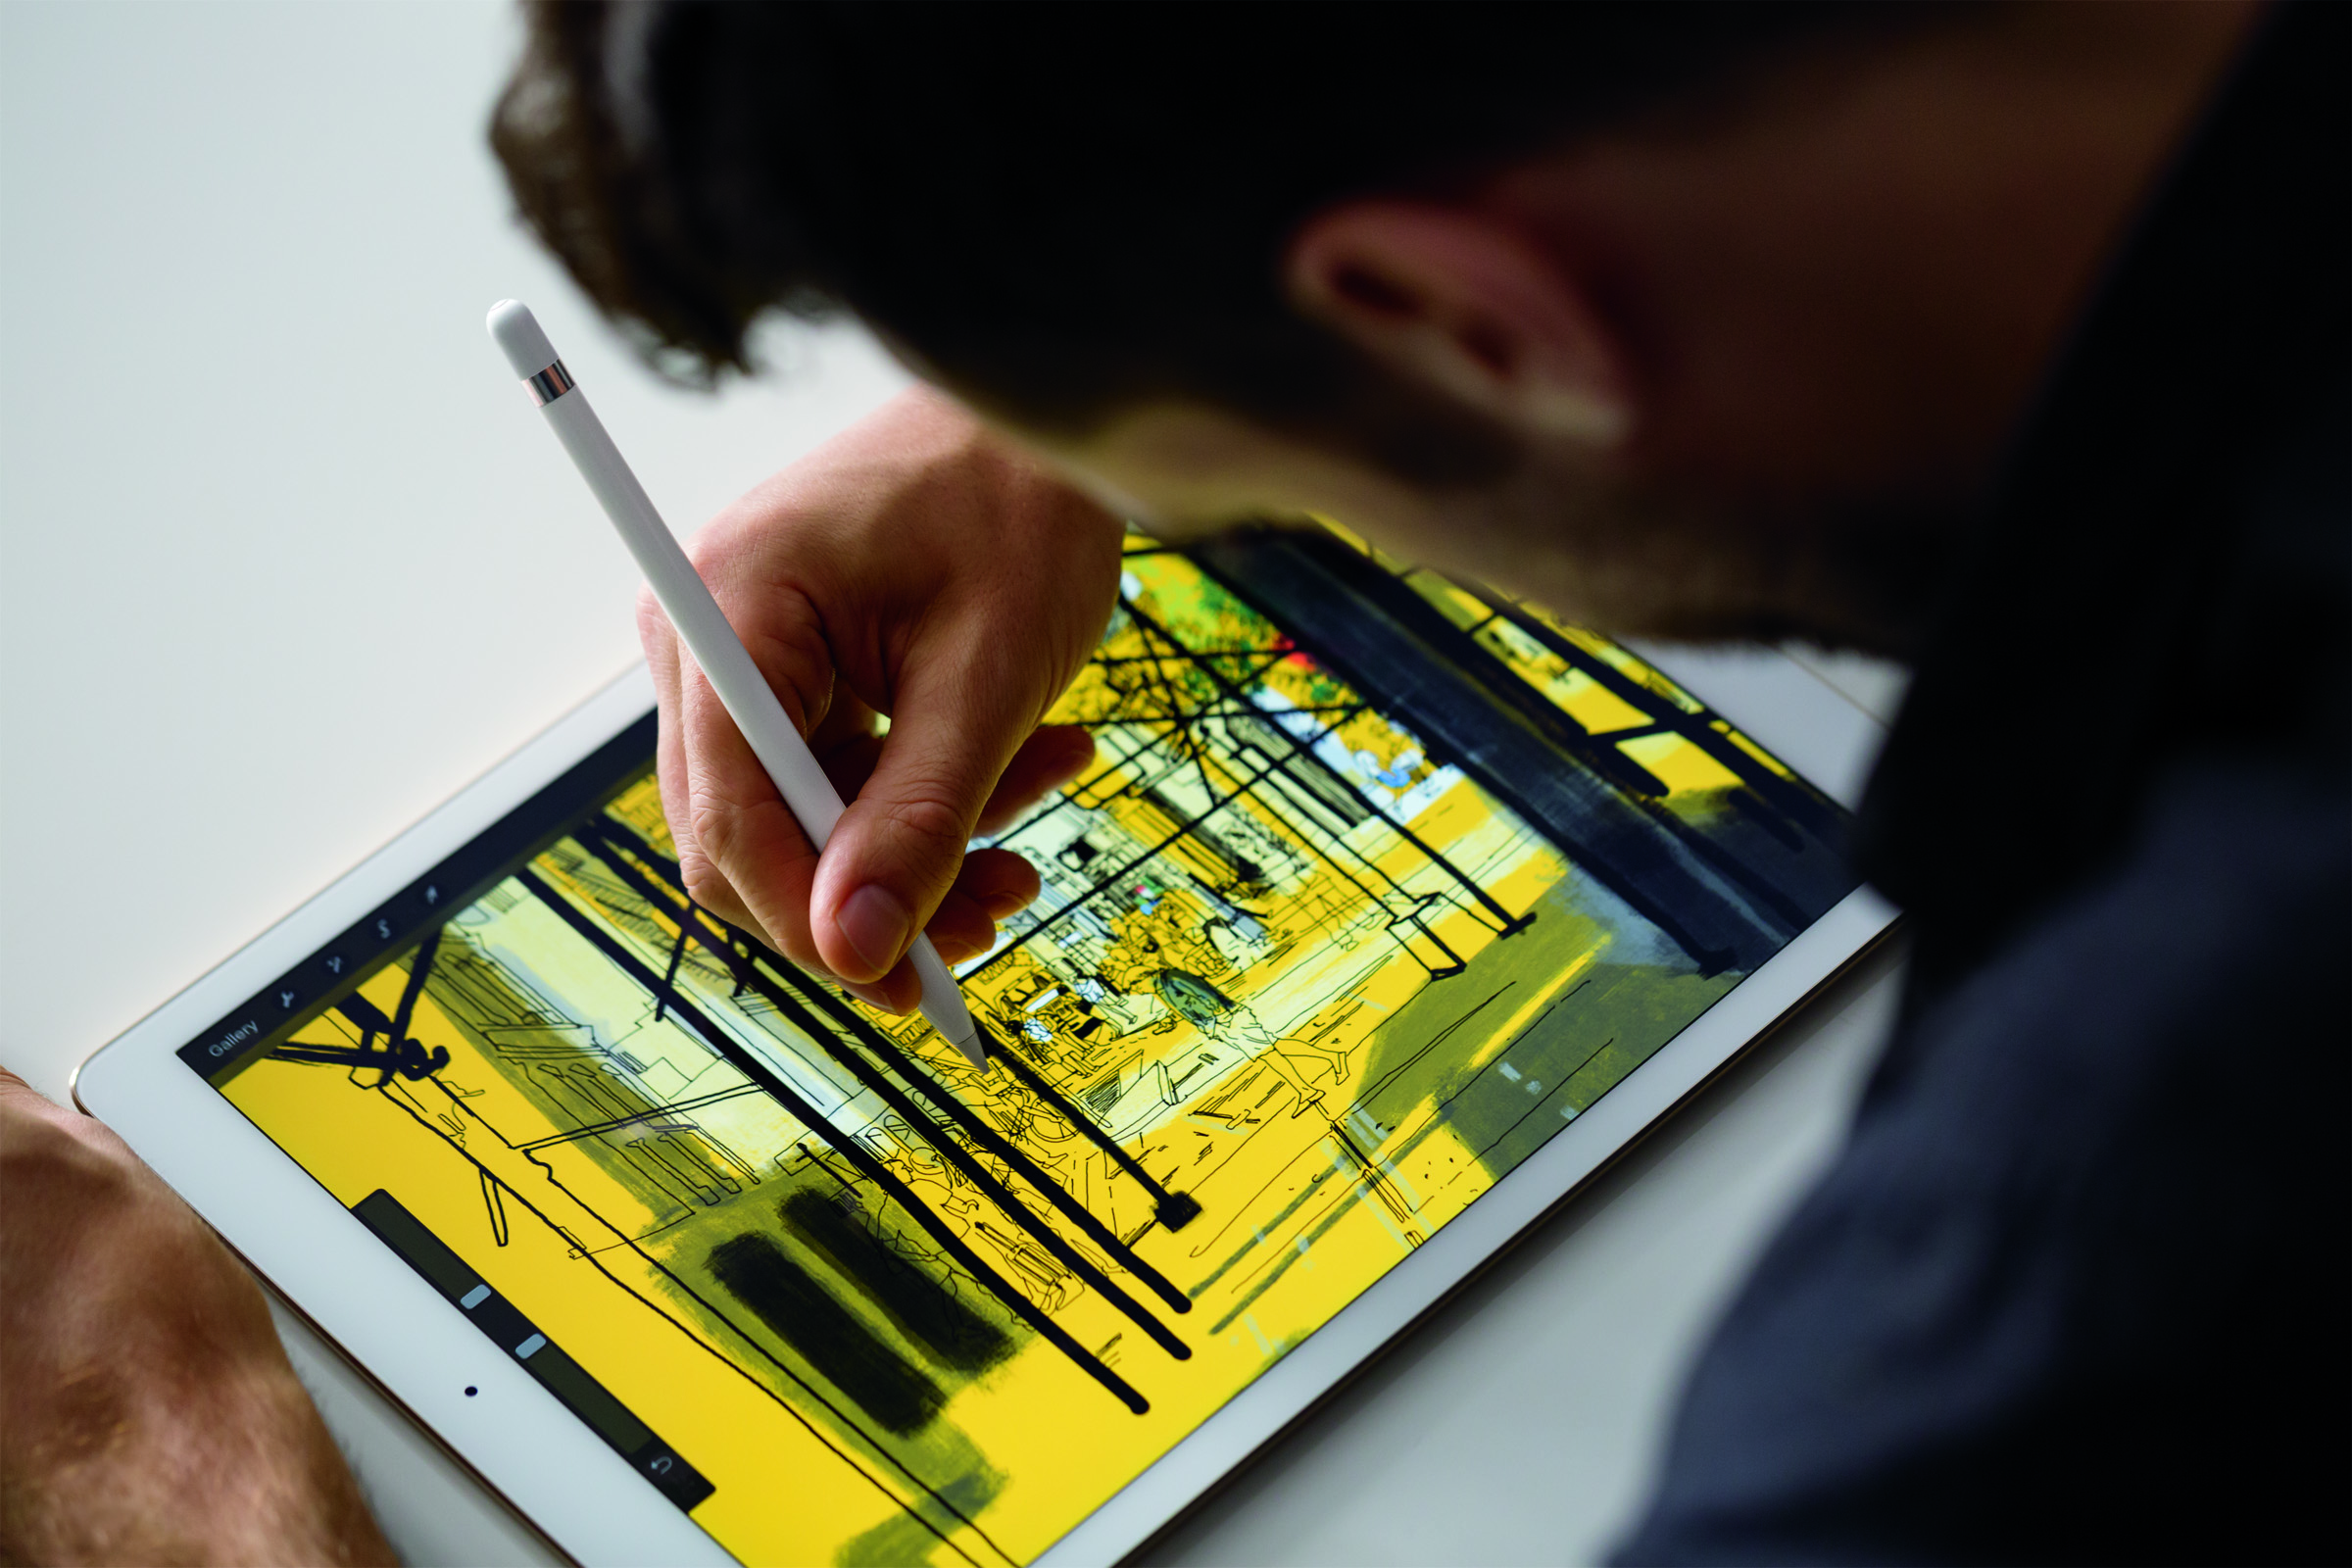 iPad Pro featuring a 12.9-inch Retina Display and Apple Pencil